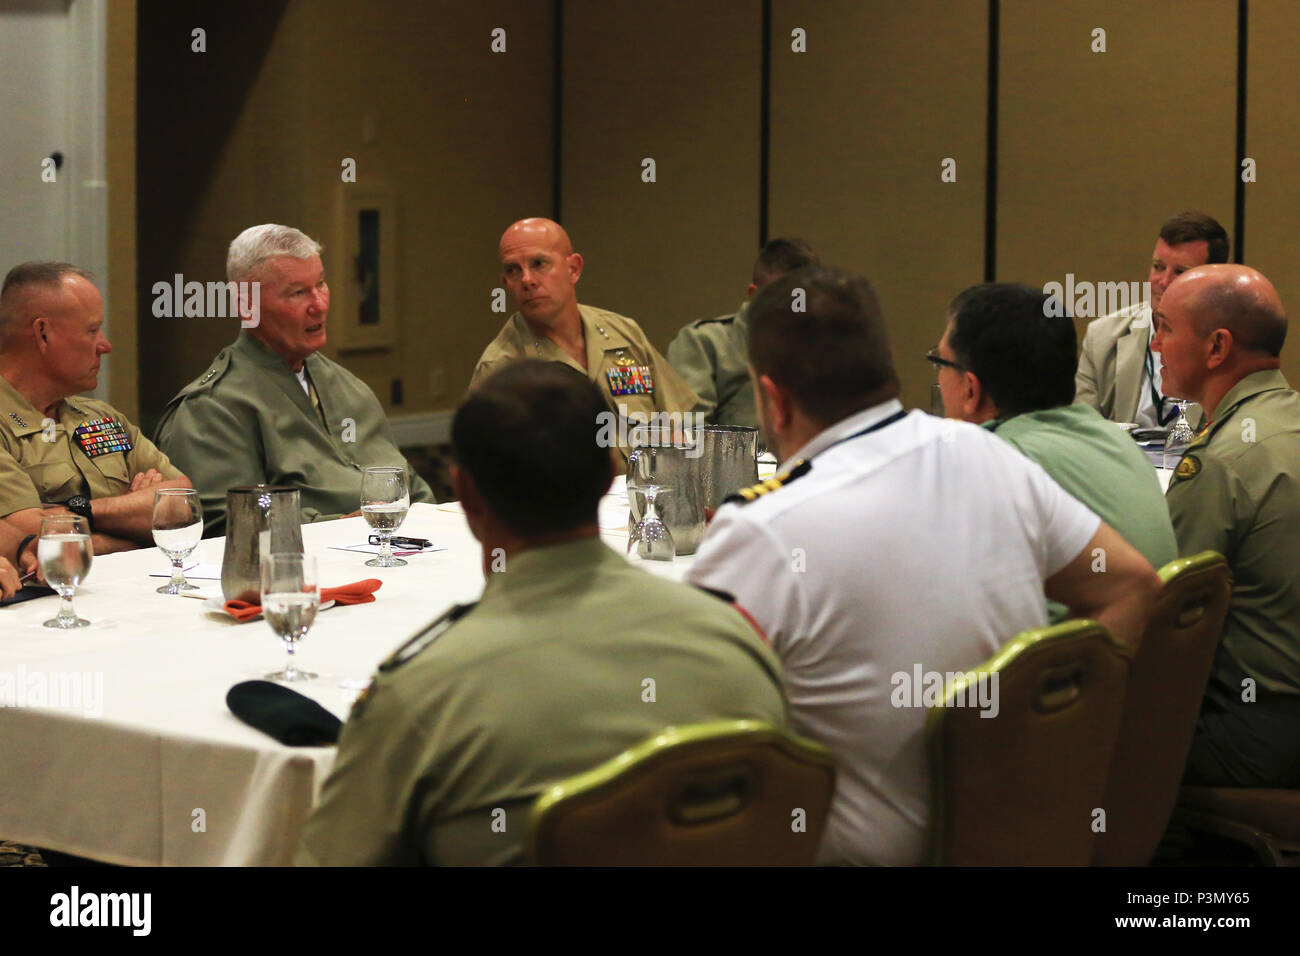 U.S. Marine Corps Lt. Gen. Lawrence Nicholson, left, commanding general, III Marine Expeditionary Force, Lt. Gen. John A. Toolan, middle, commanding general, Fleet Marine Force, Pacific, and Lt. Gen. David Berger, commanding general, I Marine Expeditionary Force, speak with representatives from New Zealand and Australia during the Pacific Command Amphibious Leaders Symposium 2016 (PALS-16) in San Diego, Calif., July 11, 2016. PALS-16 brings together senior leaders of allied and partner nations throughout the Indo-Asia Pacific region to have a meaningful dialogue on key aspects of maritime/amph Stock Photo